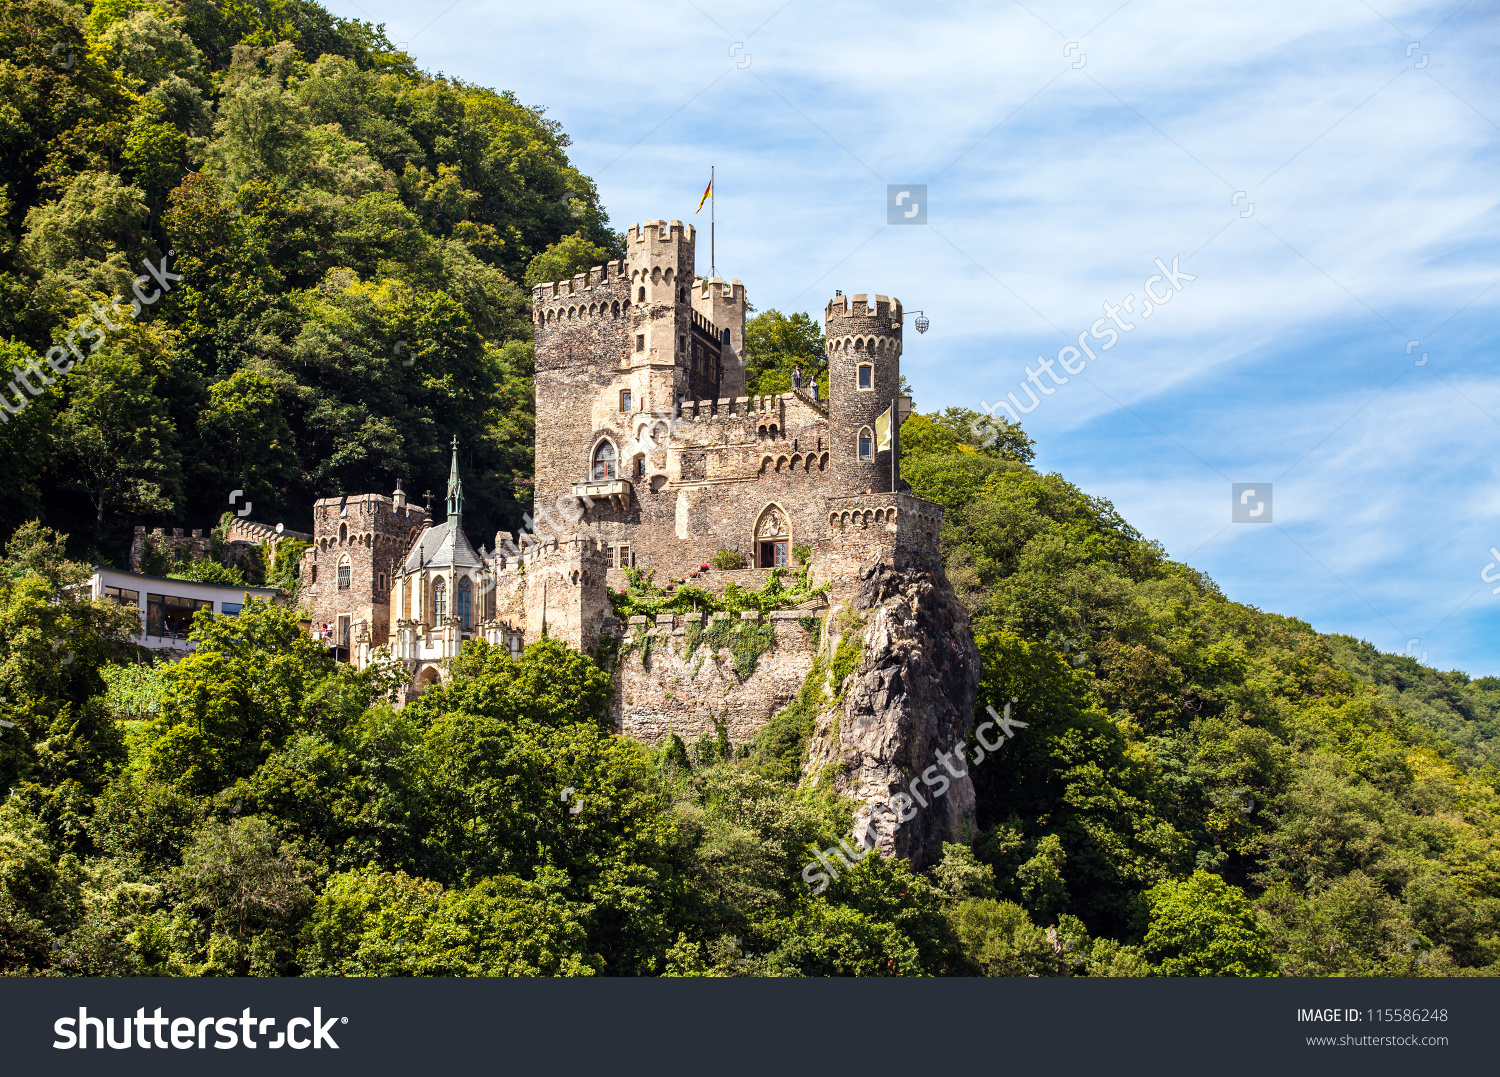 Medieval Fortress Mountains Stock Photo 115586248.